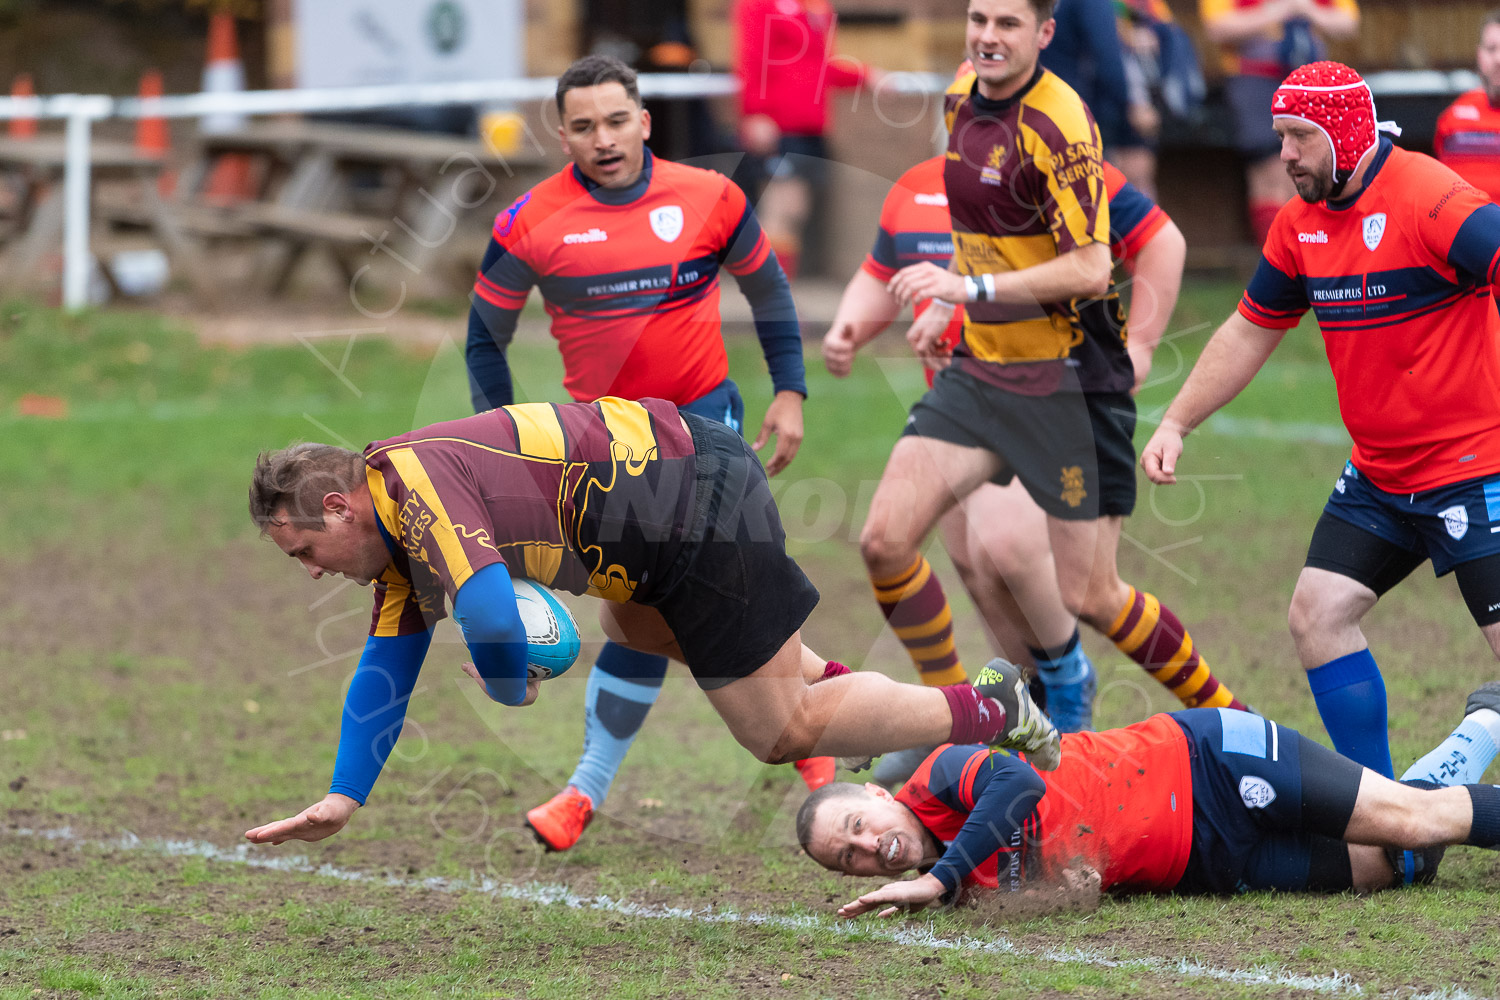 20181027 Amp Extras vs St Neots 2nd XV #2238